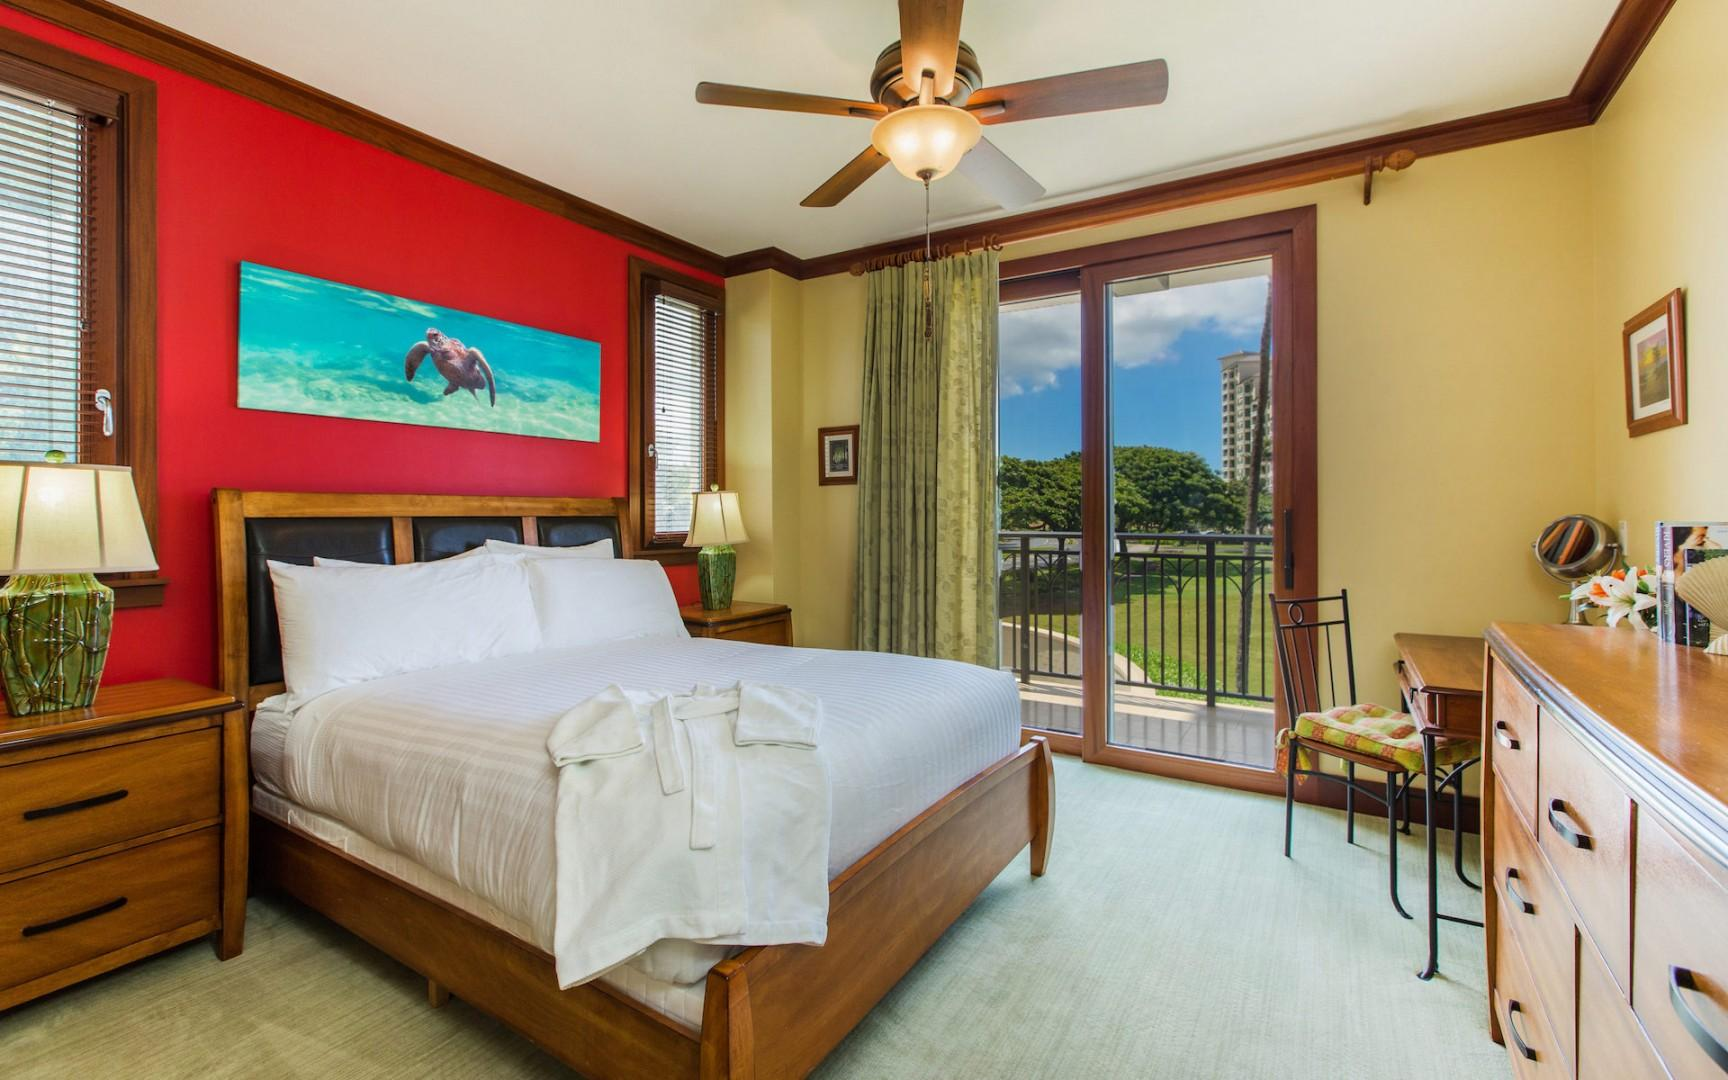 The master bedroom with en suite bath provides beautiful ocean views and convenient lanai access. Ceiling fan, dresser drawers, AC thermostat, separate deep soaking tub and shower, dual sinks, walk-in closet.